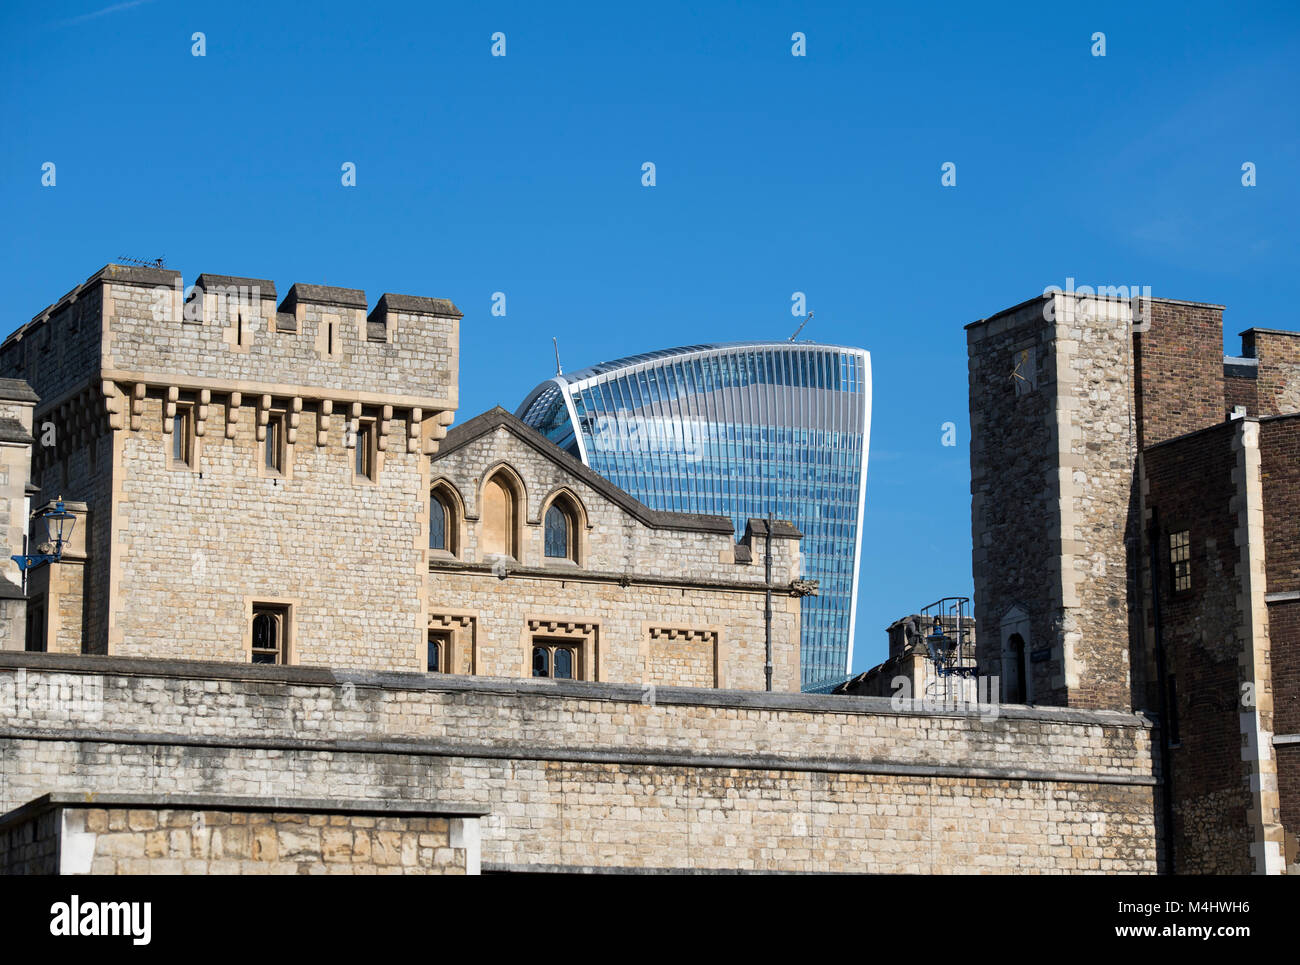 Walls of the Tower of London with the Walkie Talkie building in the background, London, England UK - Stock Image